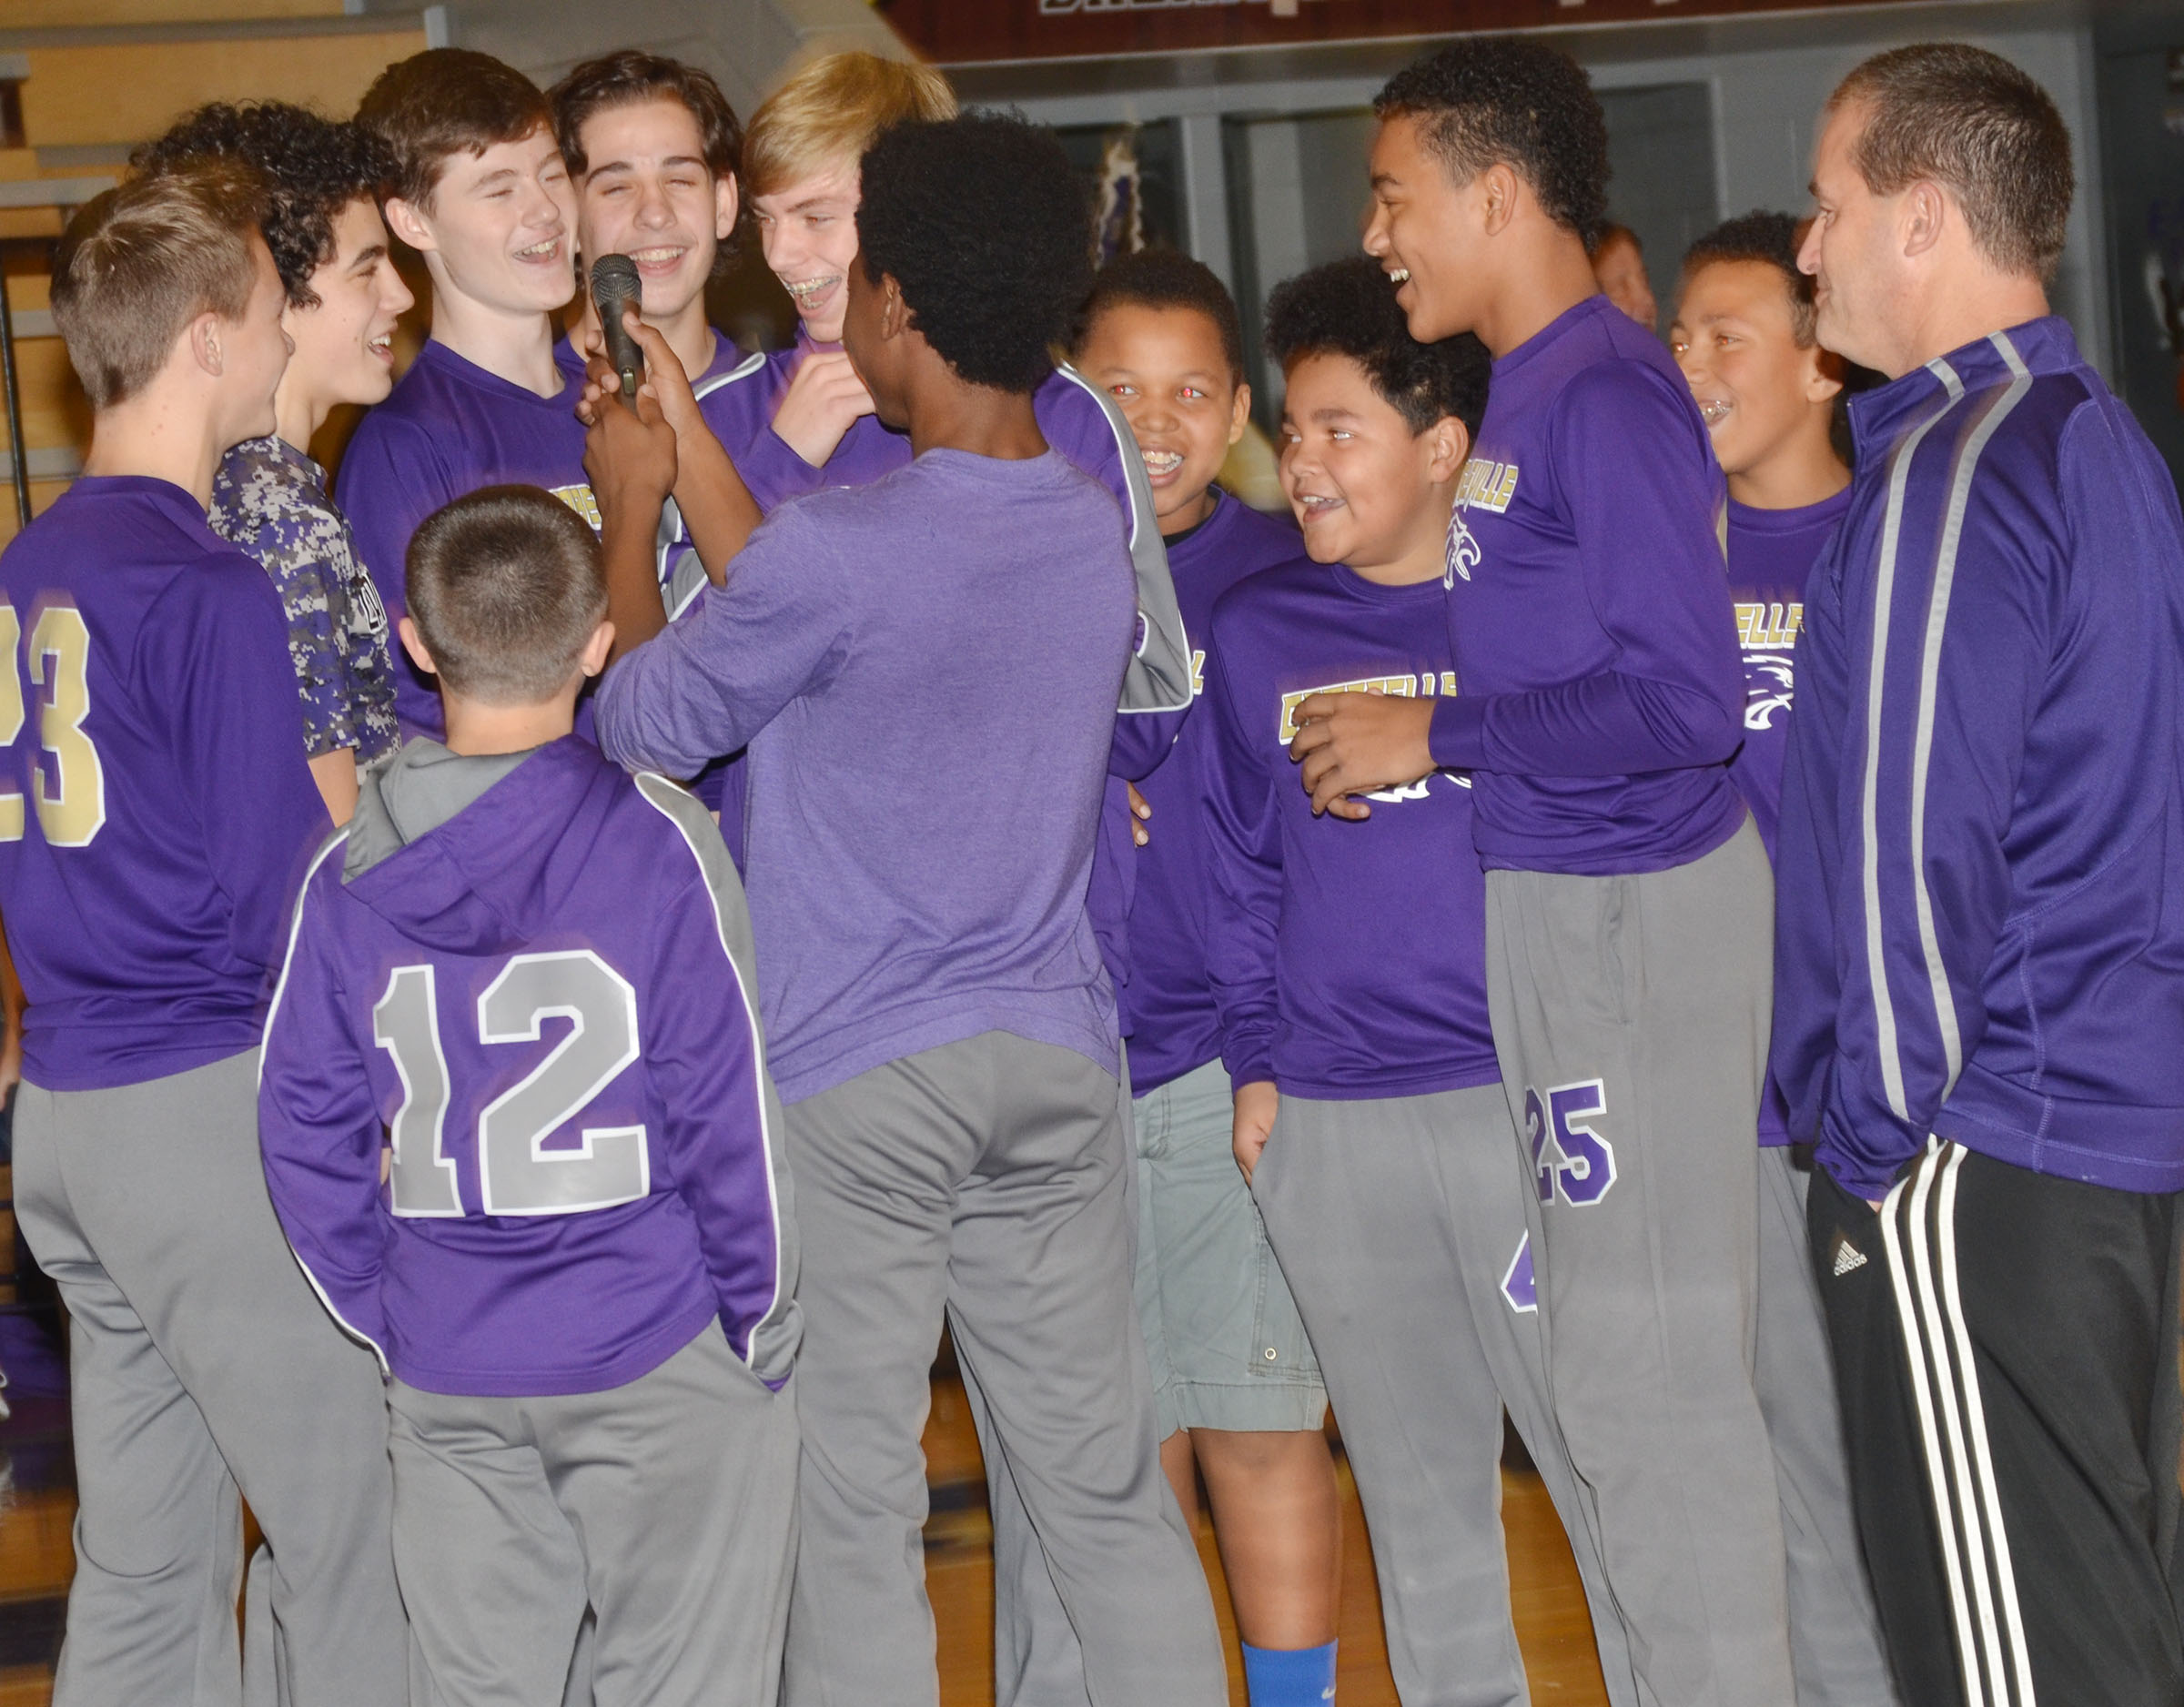 CMS boys' basketball players celebrate their win.